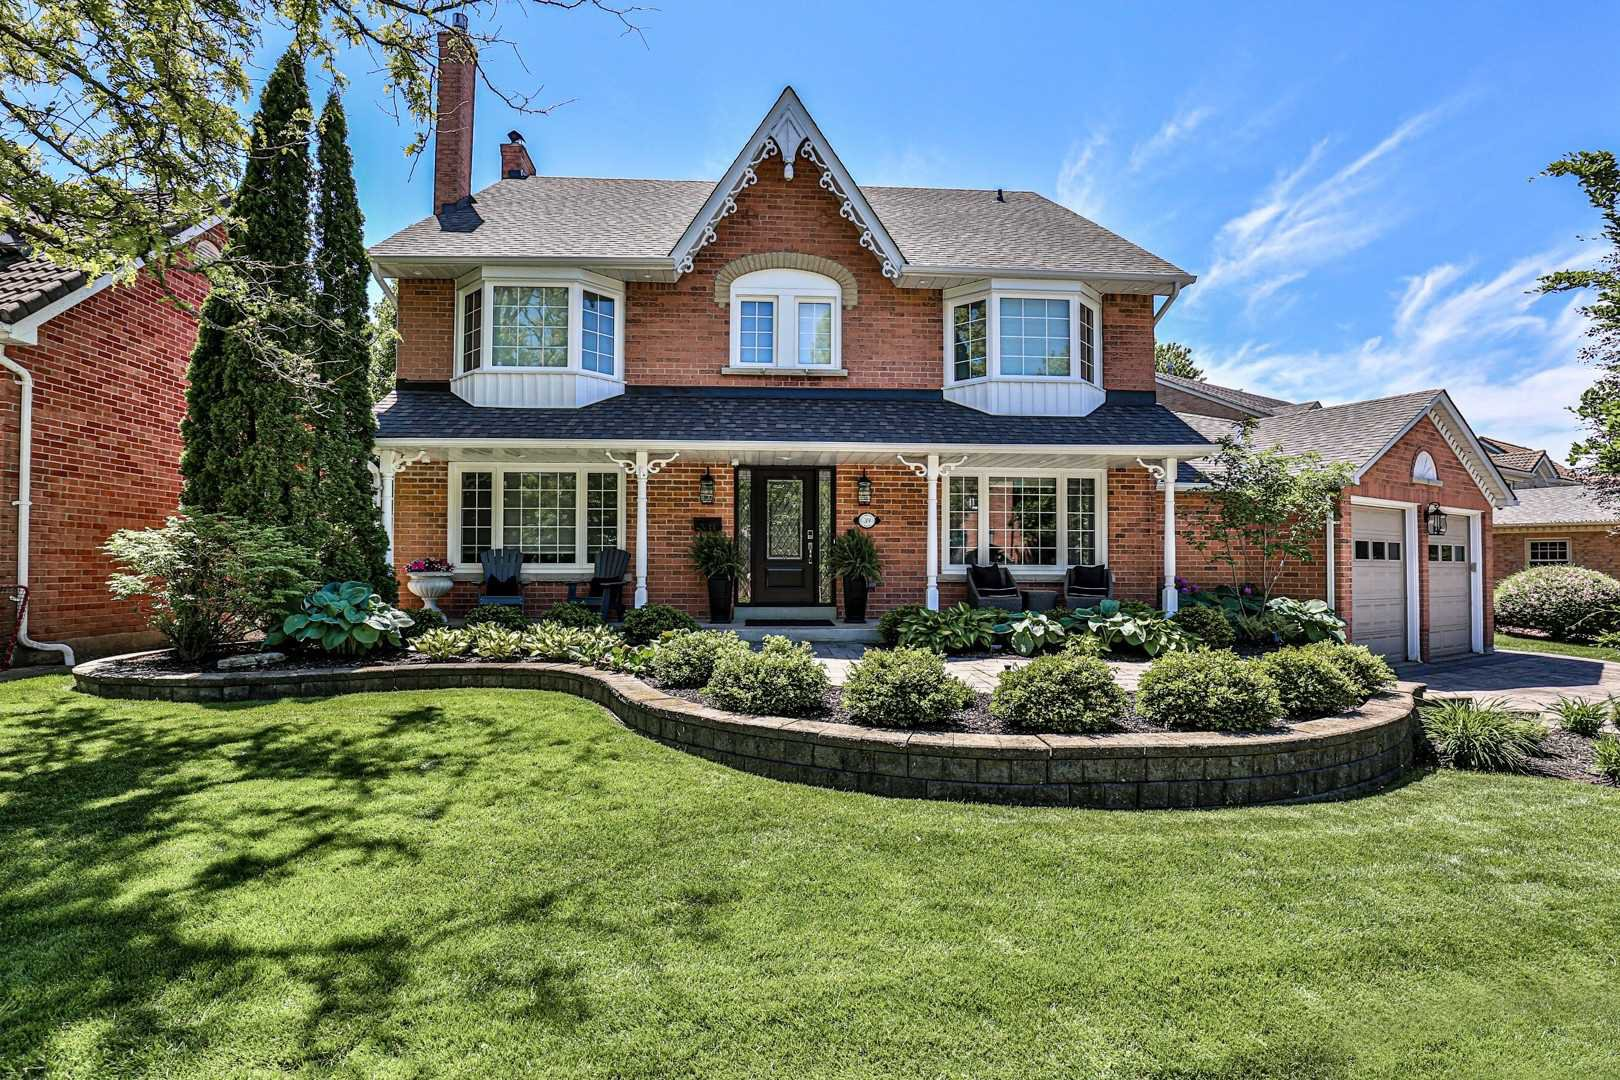 Main Photo: 39 Library Lane in Markham: Unionville House (3-Storey) for sale : MLS®# N4794285